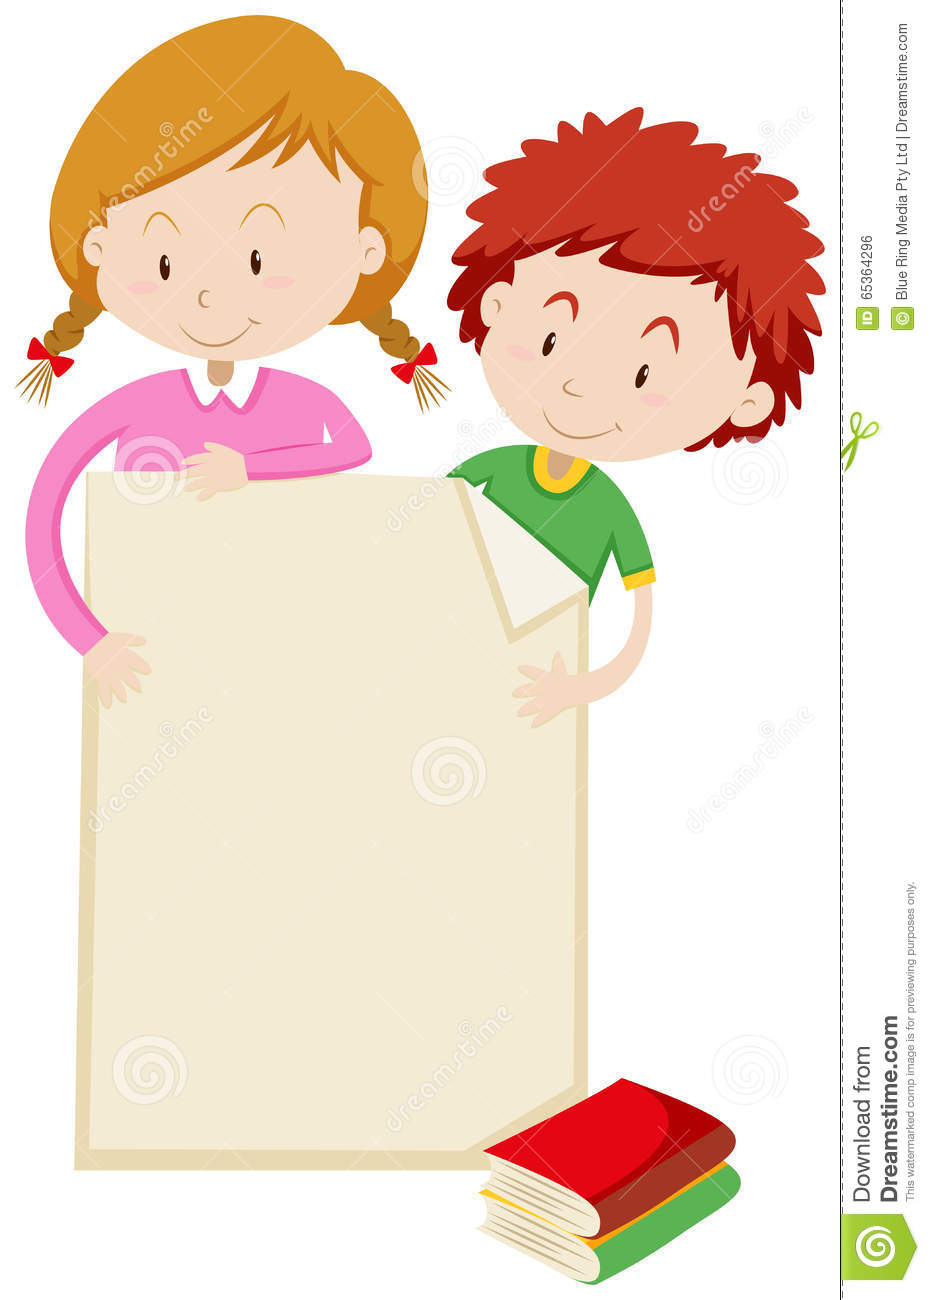 Border Design With Children And Books Stock Vector ...